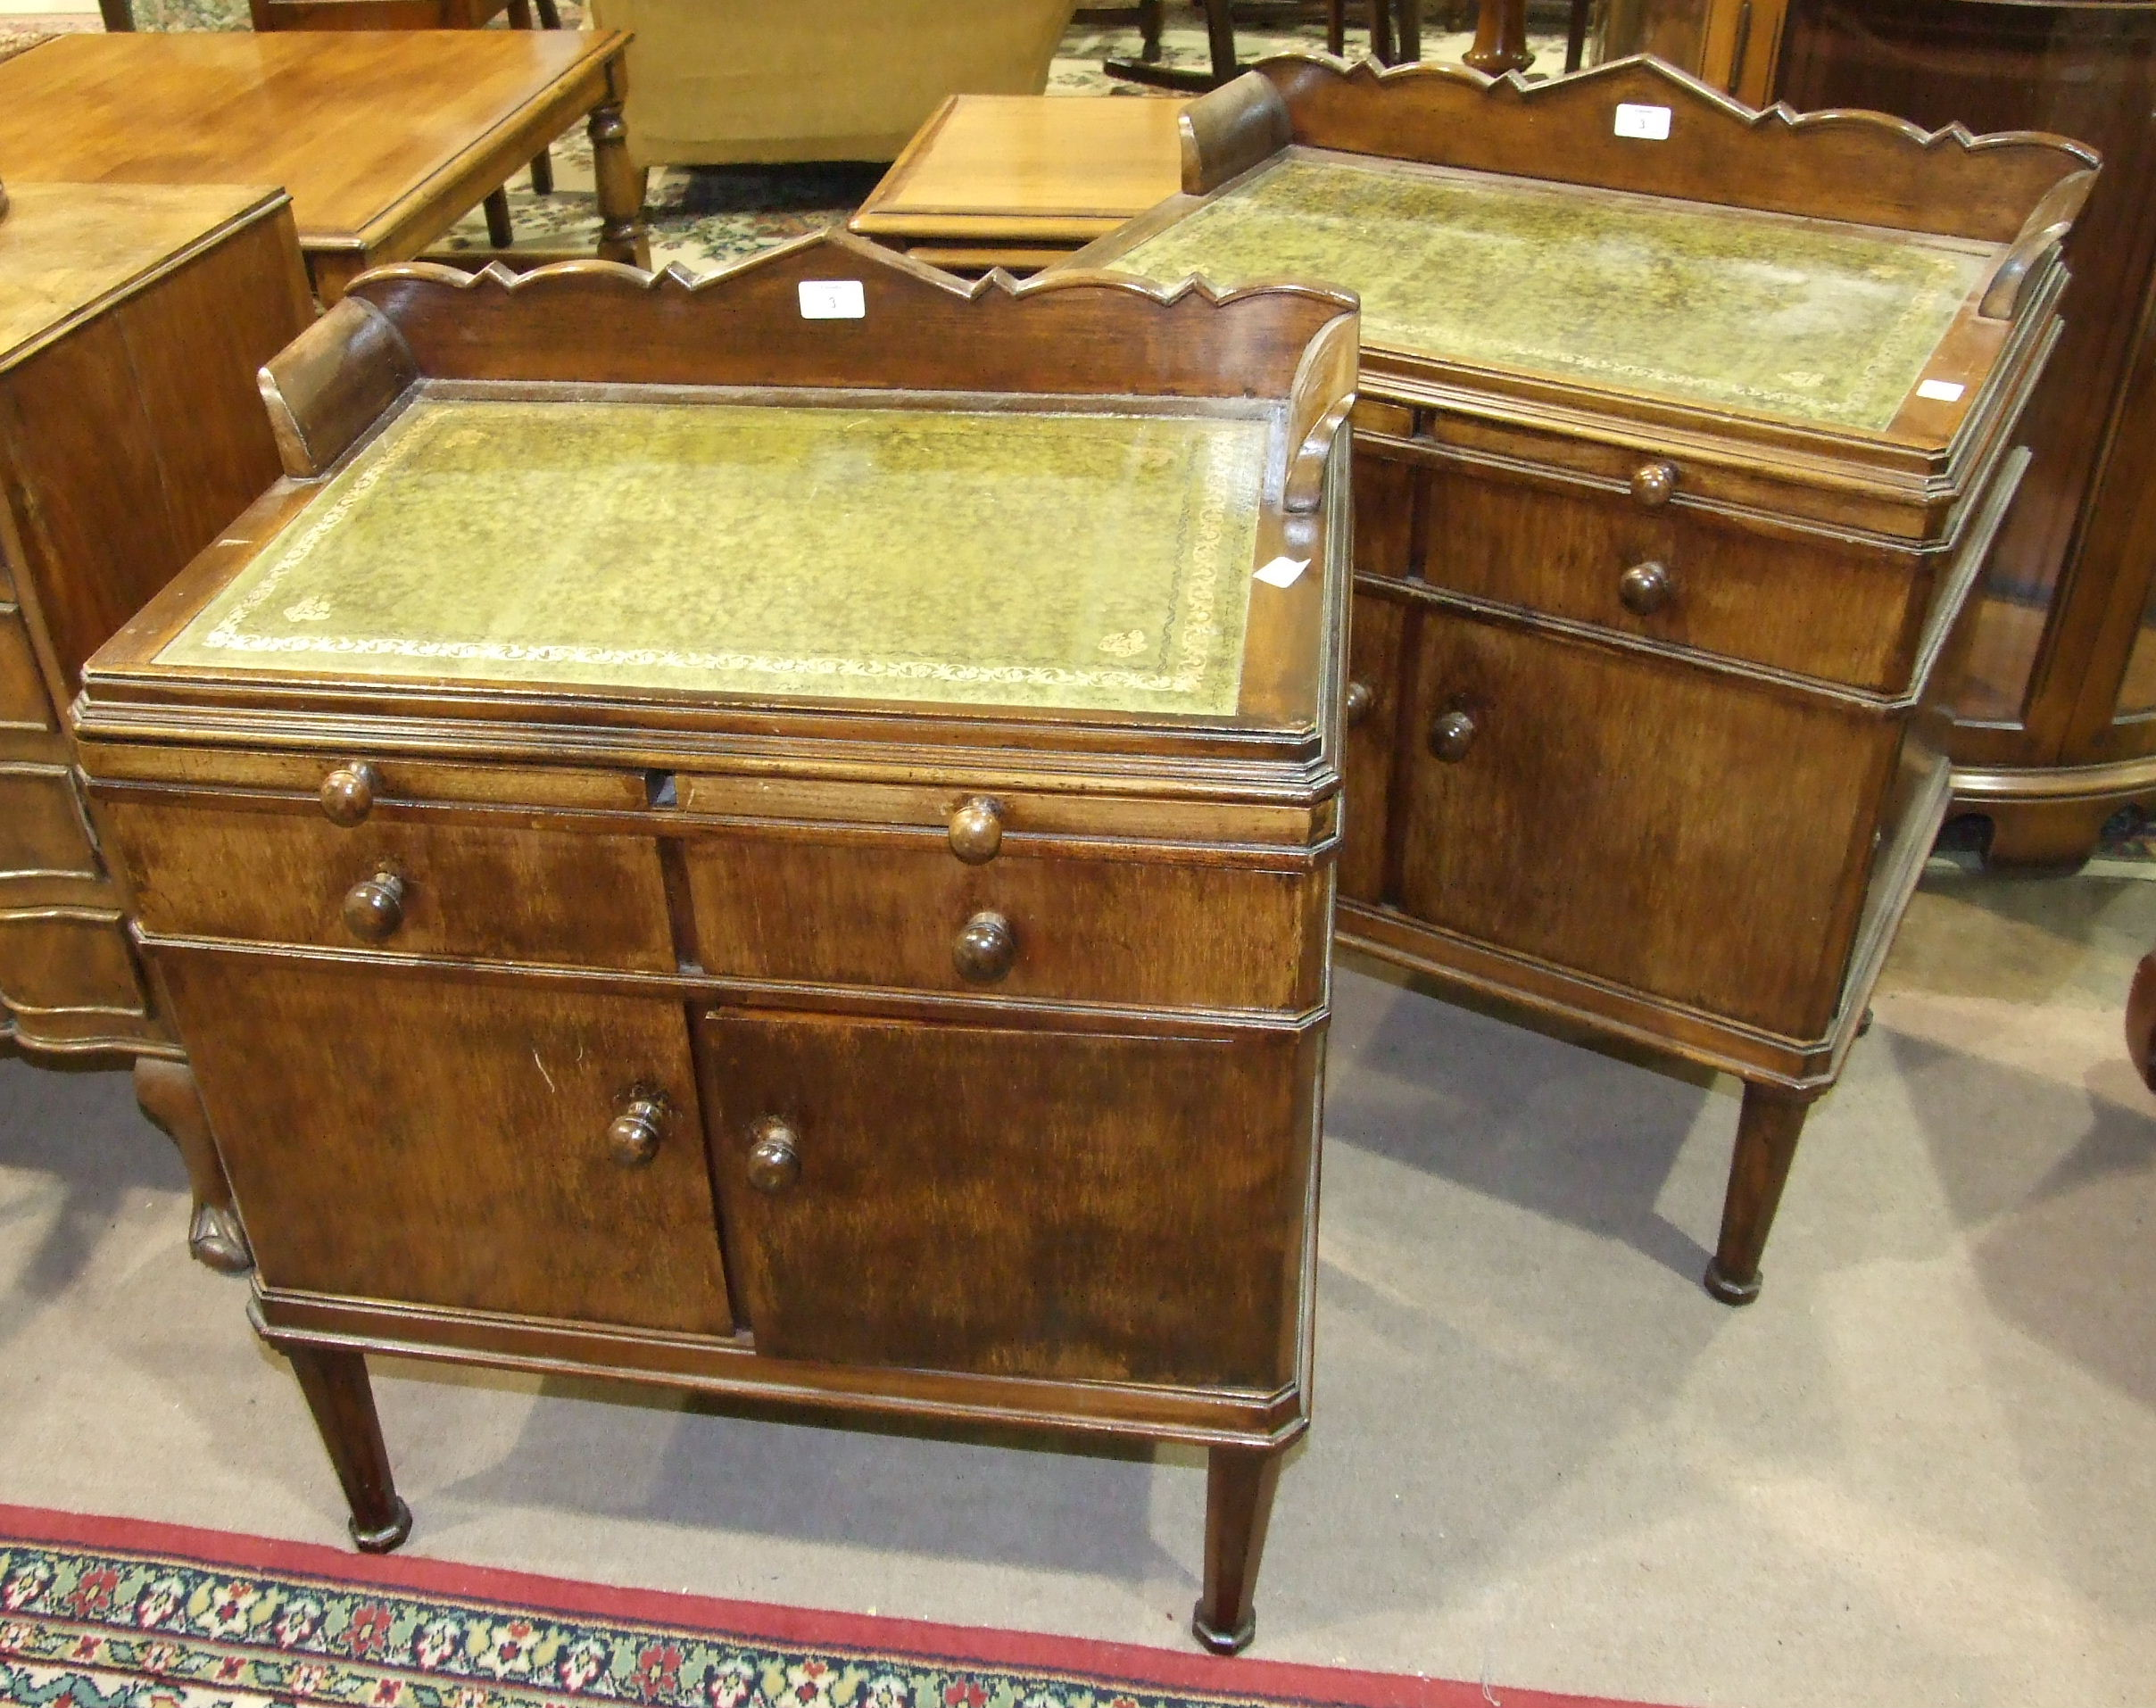 Lot 3 - A pair of stained wood low cupboards, each with a rectangular top and inset above two slides, two